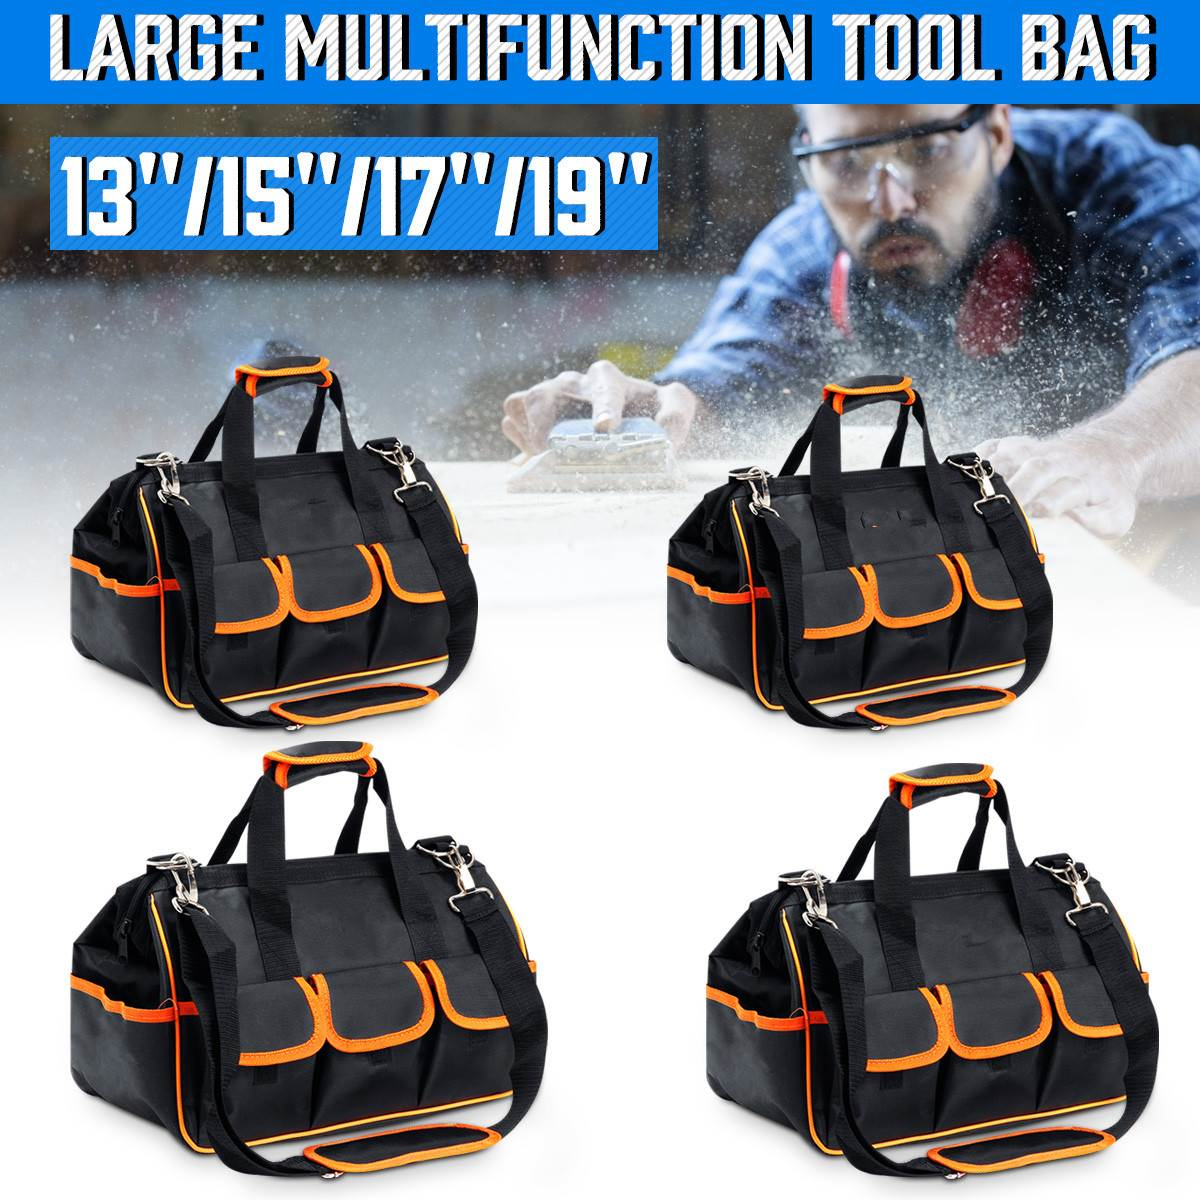 13/15/17/19 Inch Portable Tool Bag Electrician Bag Multifunction Repair Installation Canvass Large Thicken Tool Bag Work Pocket